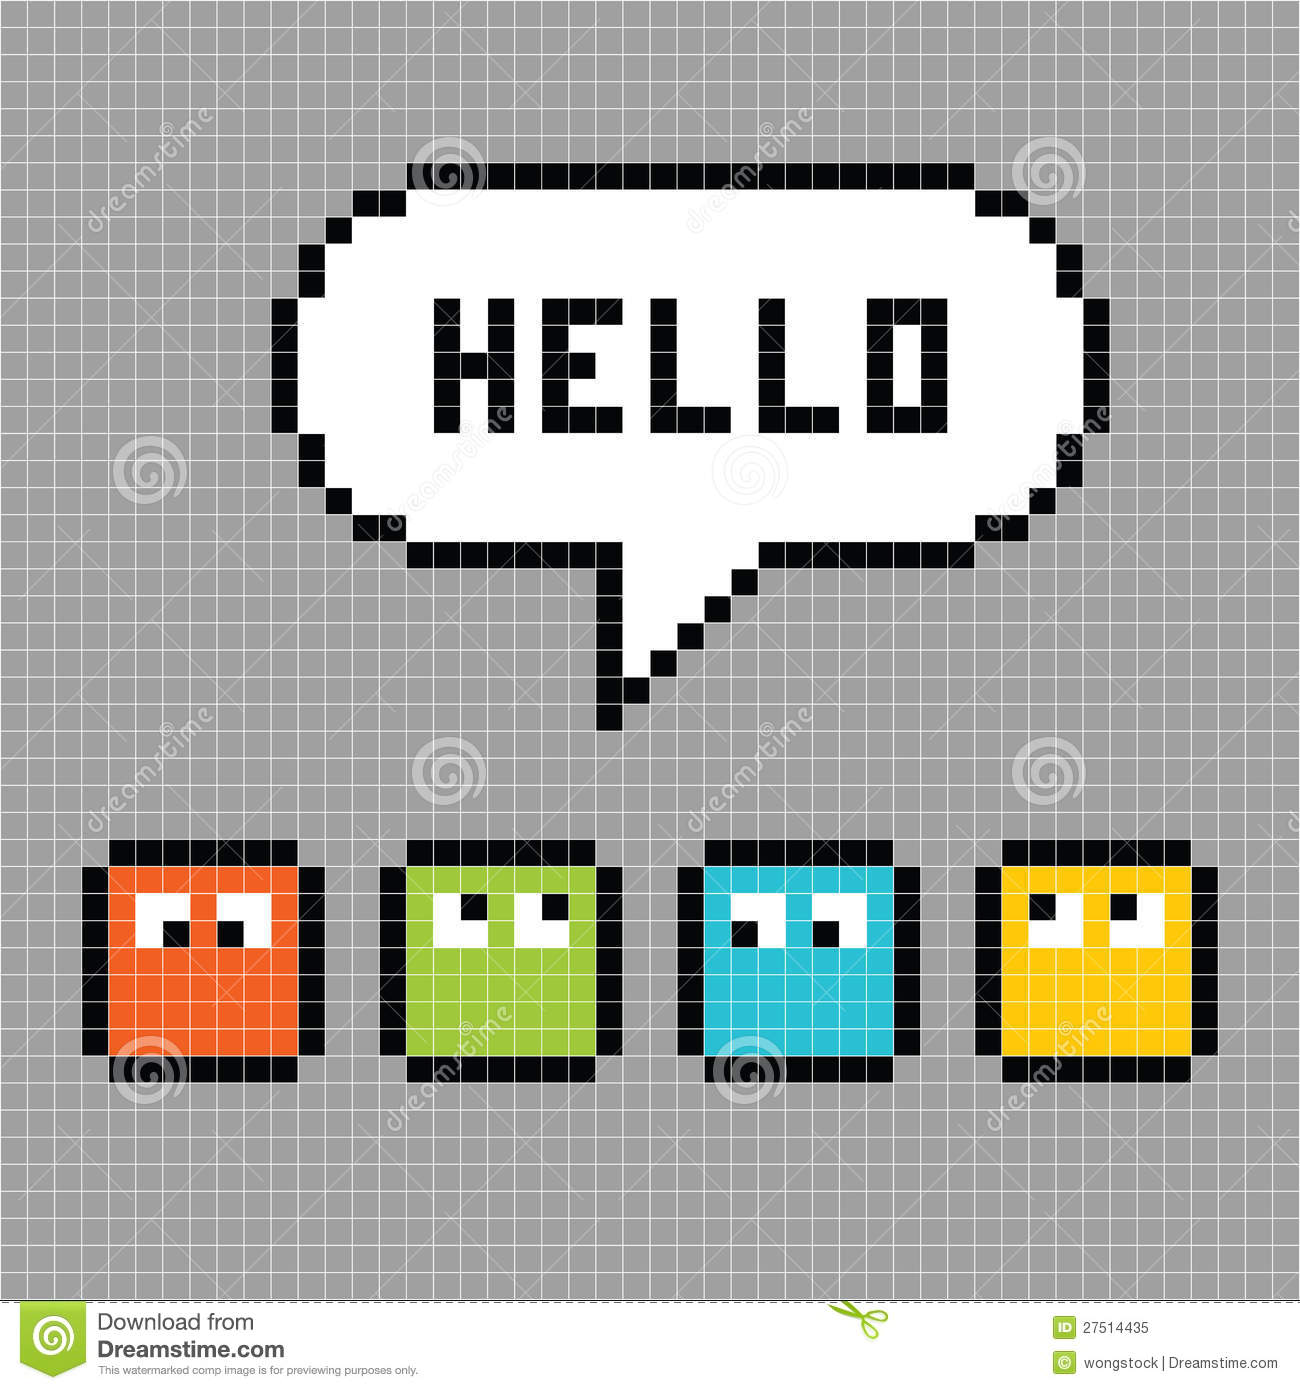 Pixel Characters Say Hello Royalty Free Stock Photo - Image: 27514435 Vintage Camera Backgrounds